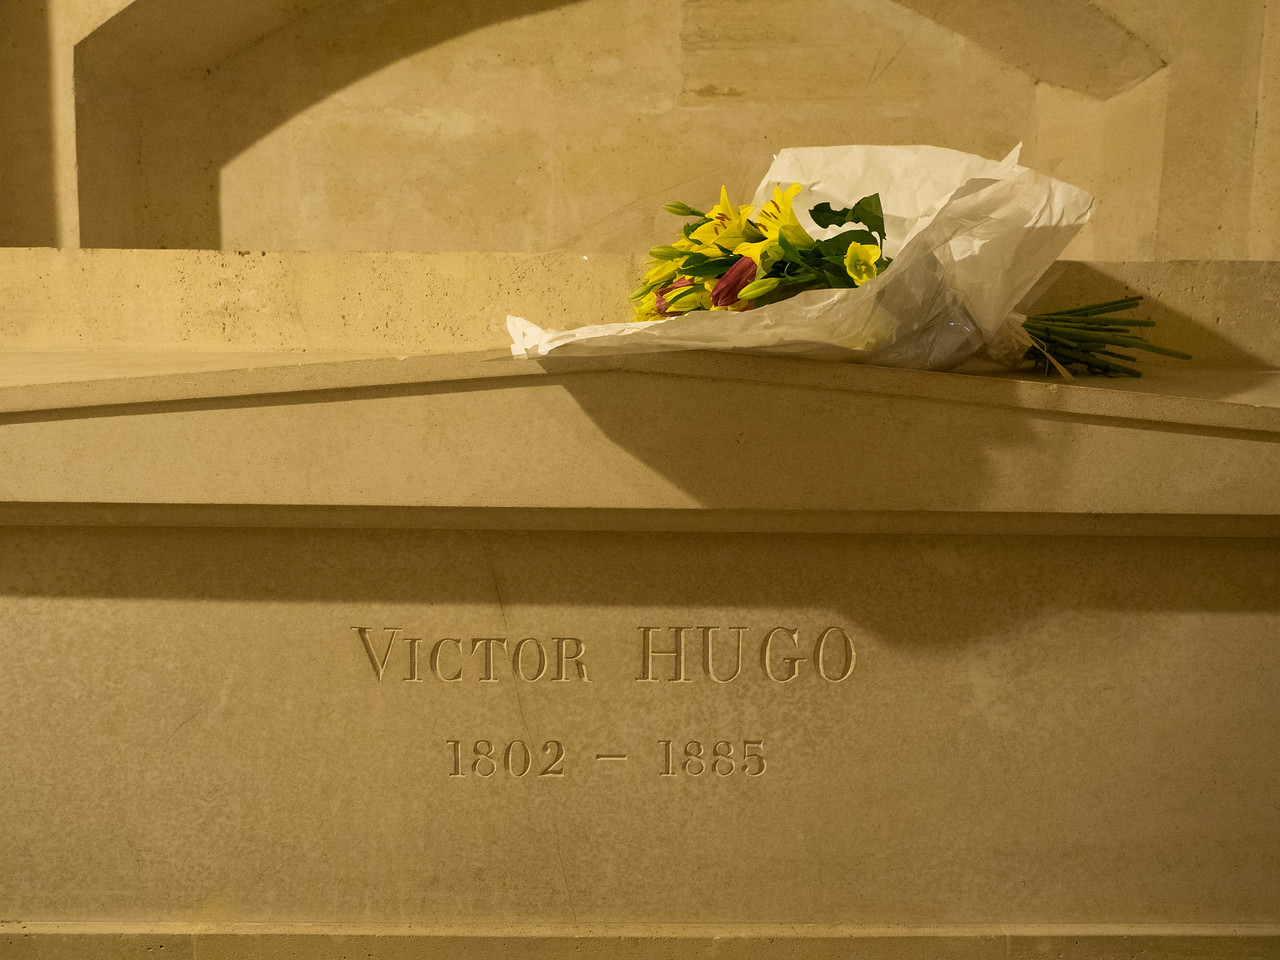 Fresh flowers at Victor Hugo's tomb.